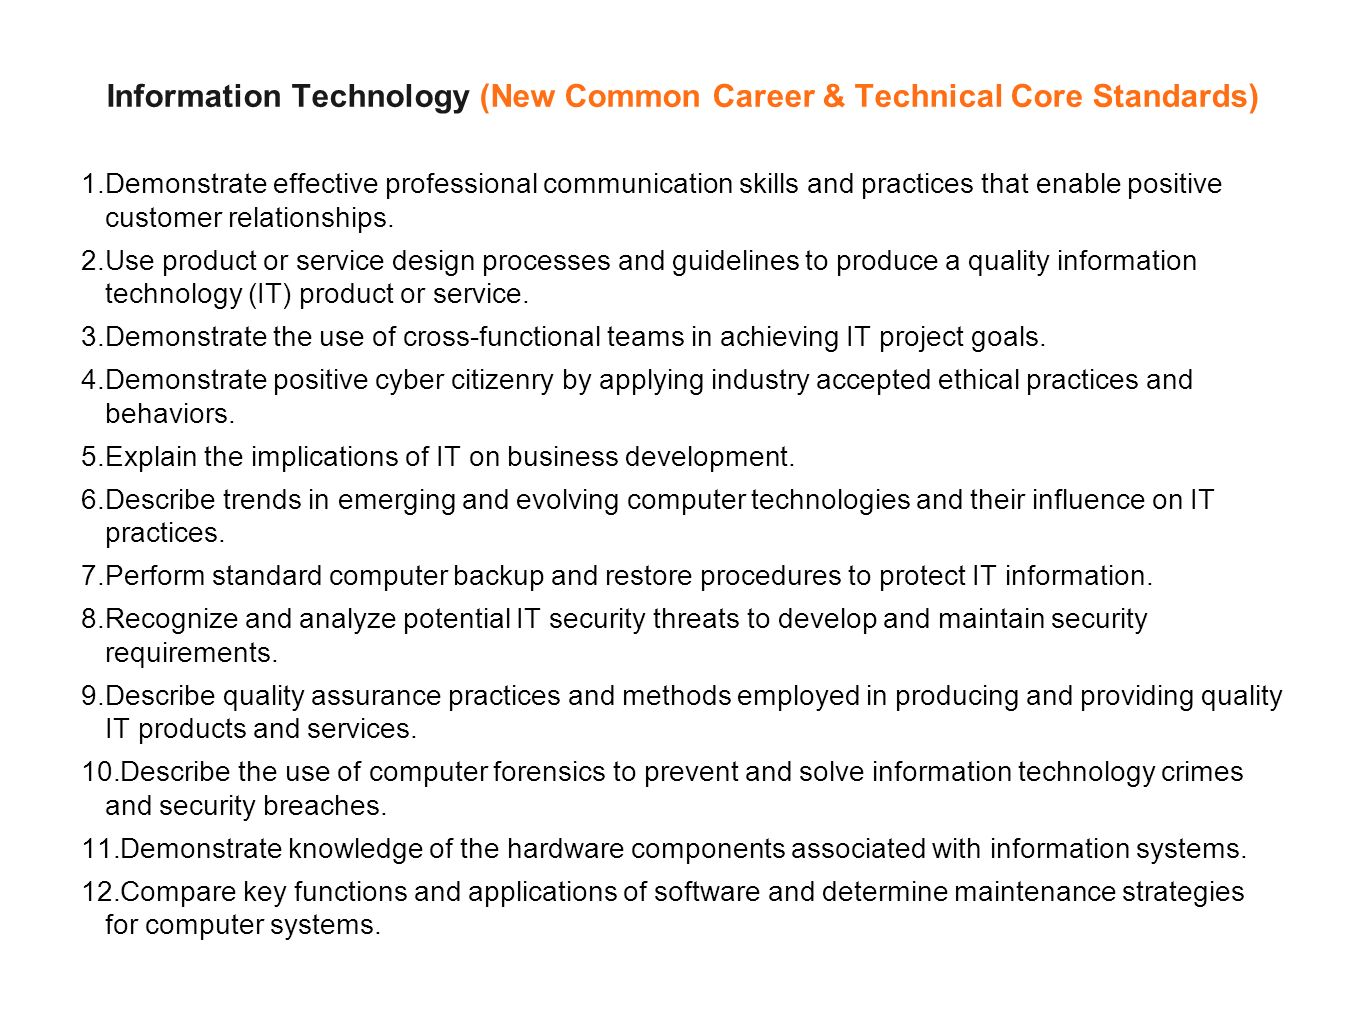 Information Technology (New Common Career & Technical Core Standards) 1.Demonstrate effective professional communication skills and practices that enable positive customer relationships.